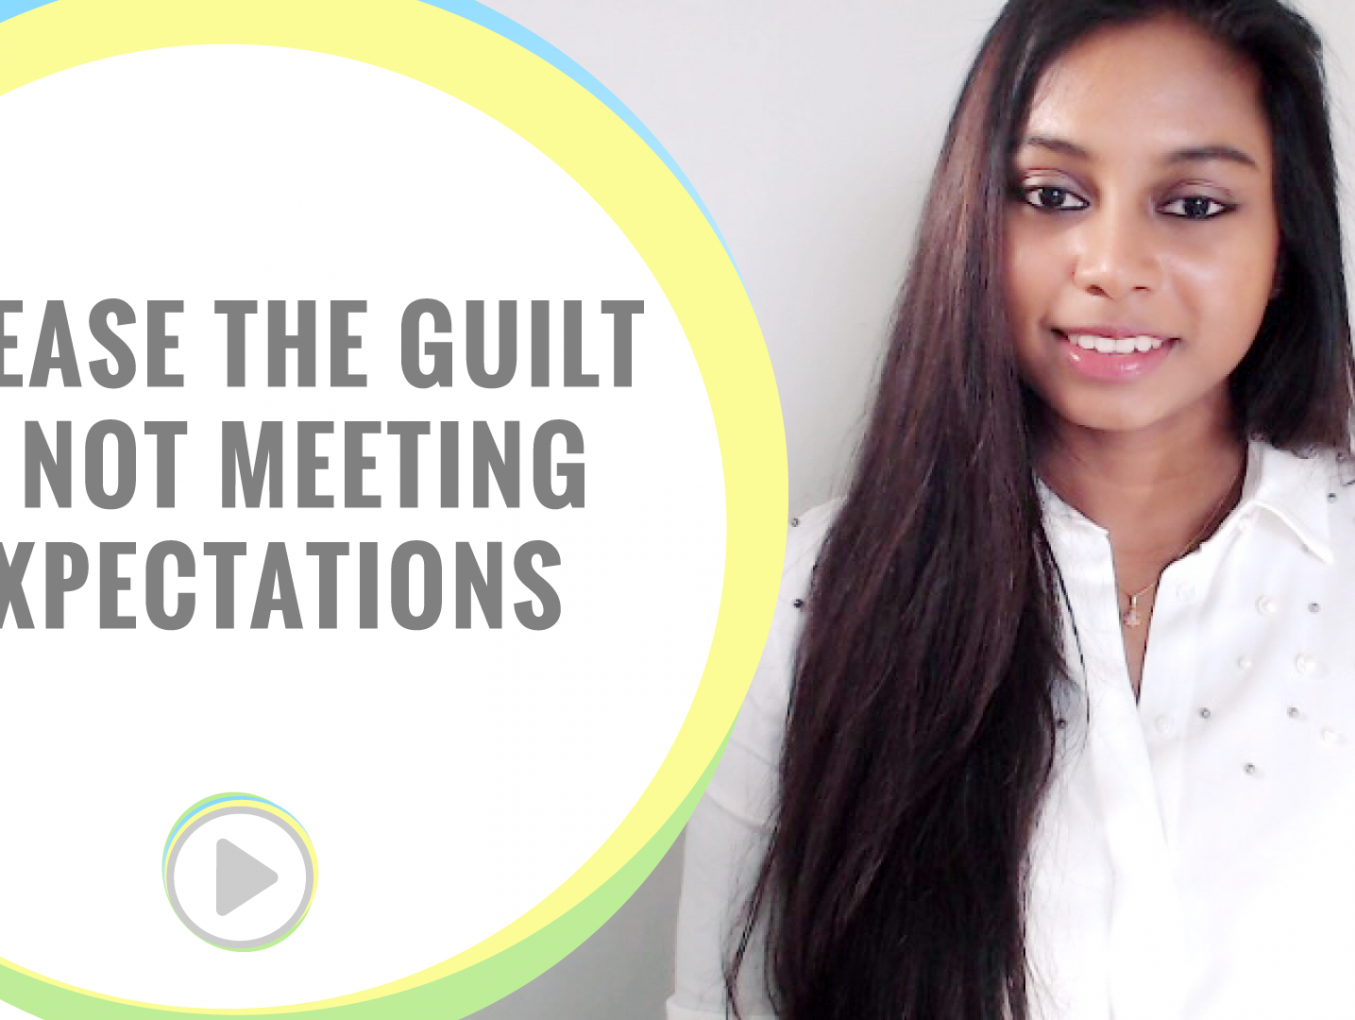 Dealing with guilt of not meeting expectations